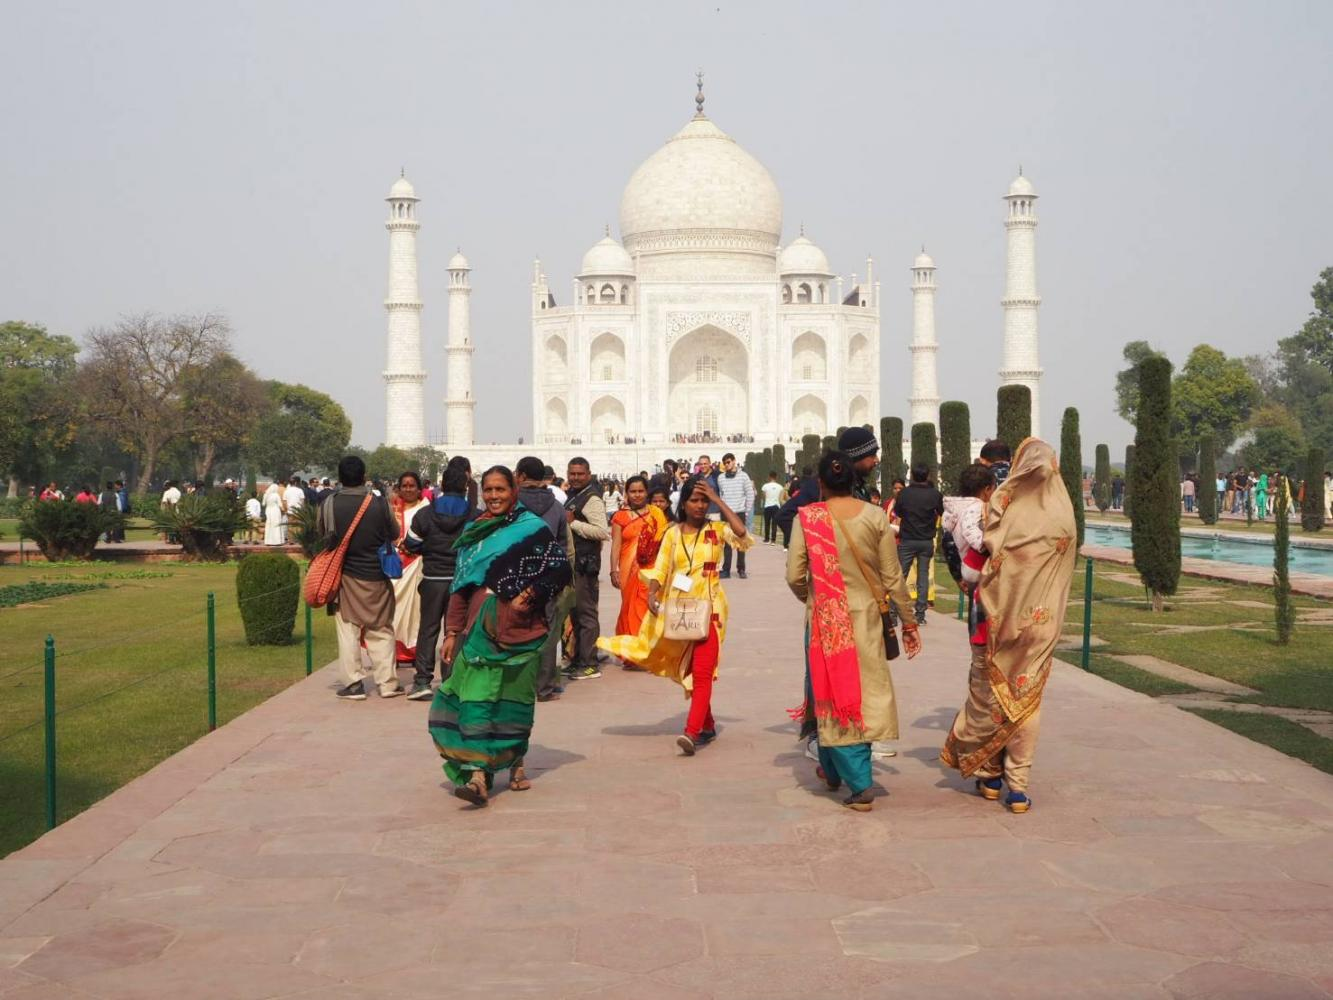 Indian tourists, who are the third-largest country group among tourists in Thailand, at the Taj Mahal in Agra.(Photo by Dusida Worrachaddejchai)